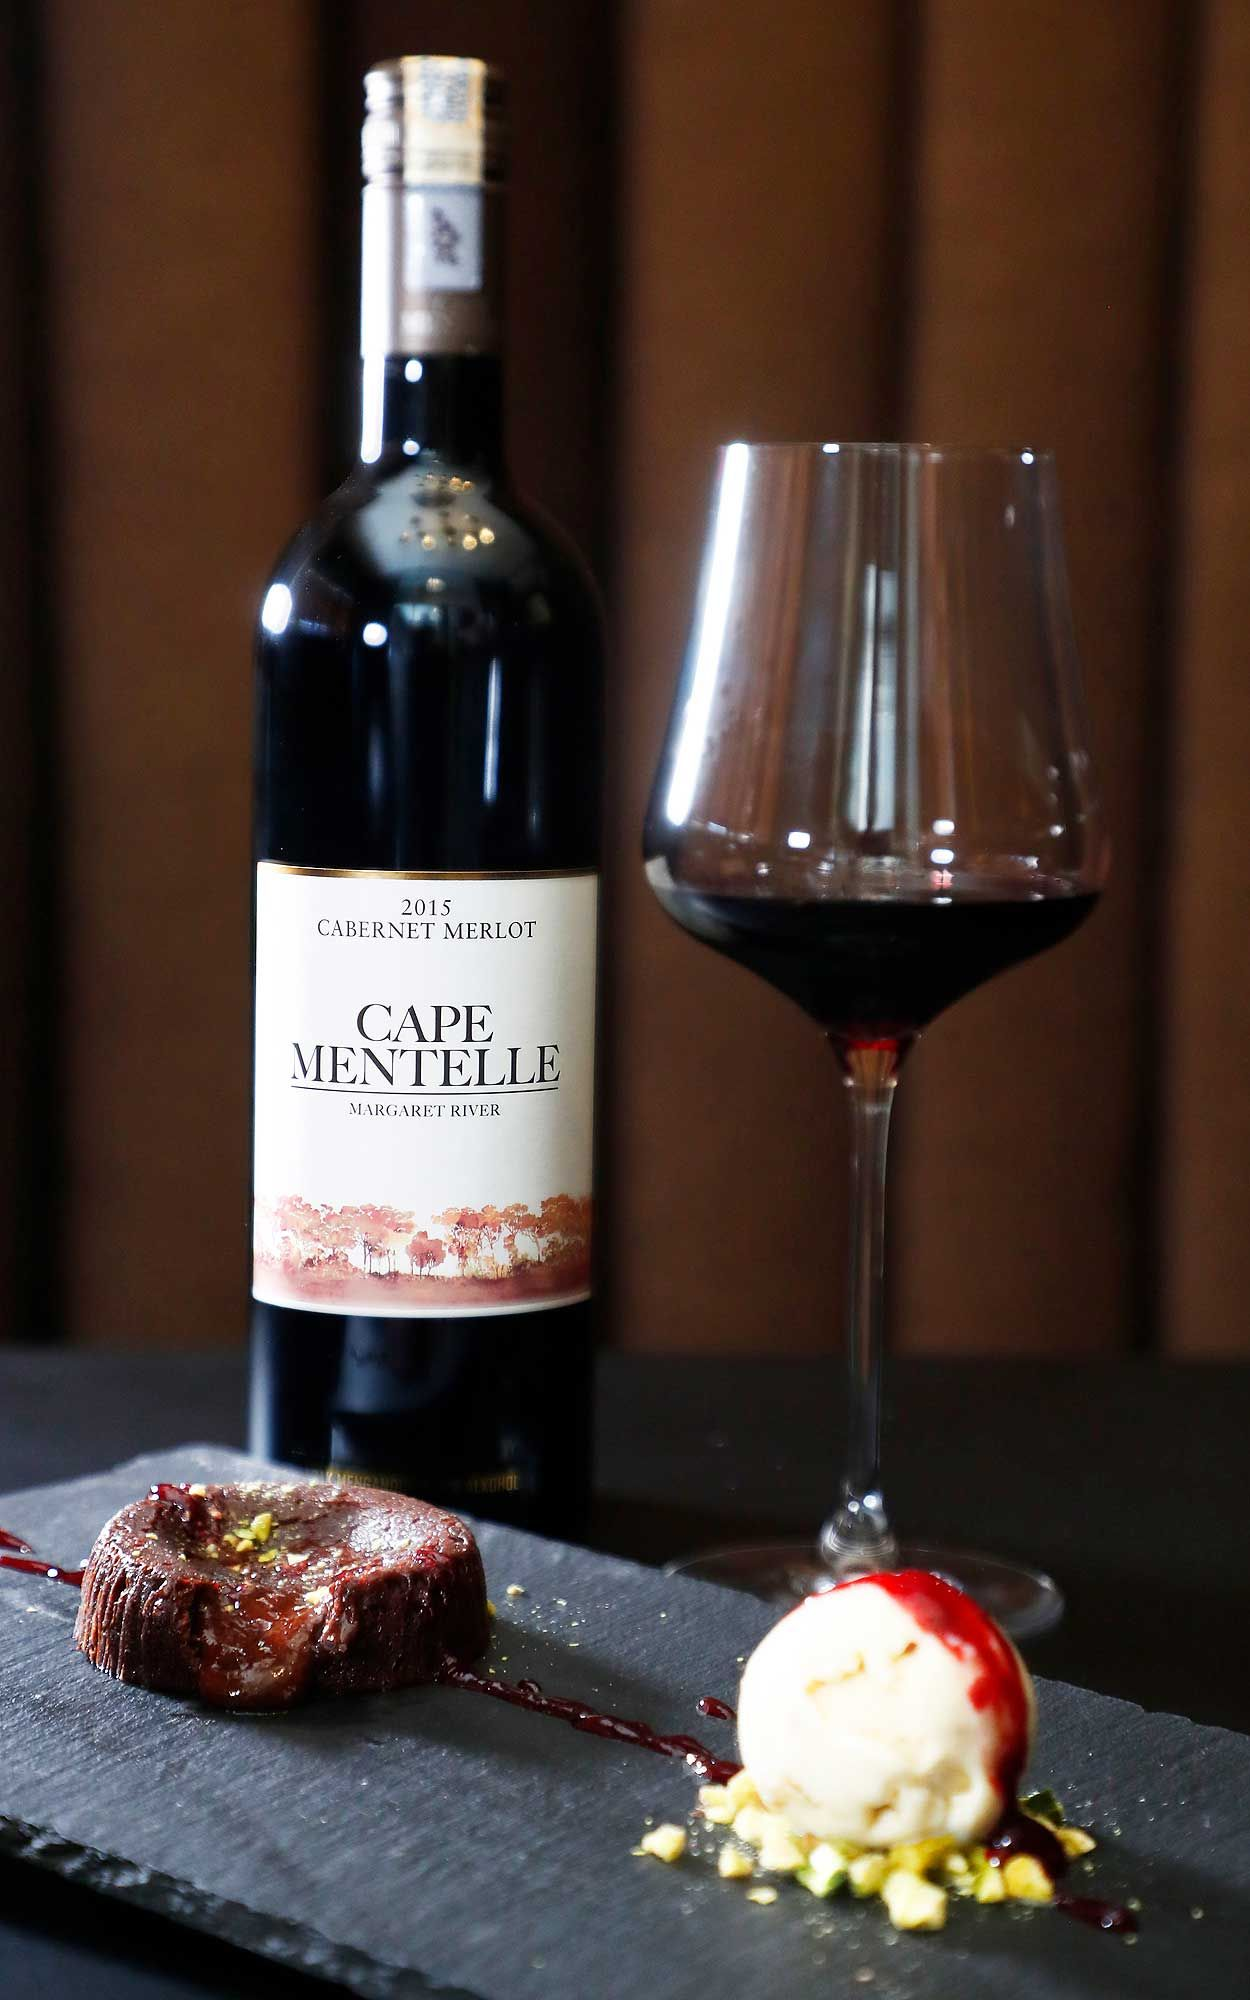 The Cape Mentelle cabernet Merlot 2015 paired with chocolate lava cake, raspberry coulis, pistachio, and rum & raisin ice cream. Photo: Credit Bonnie Yap